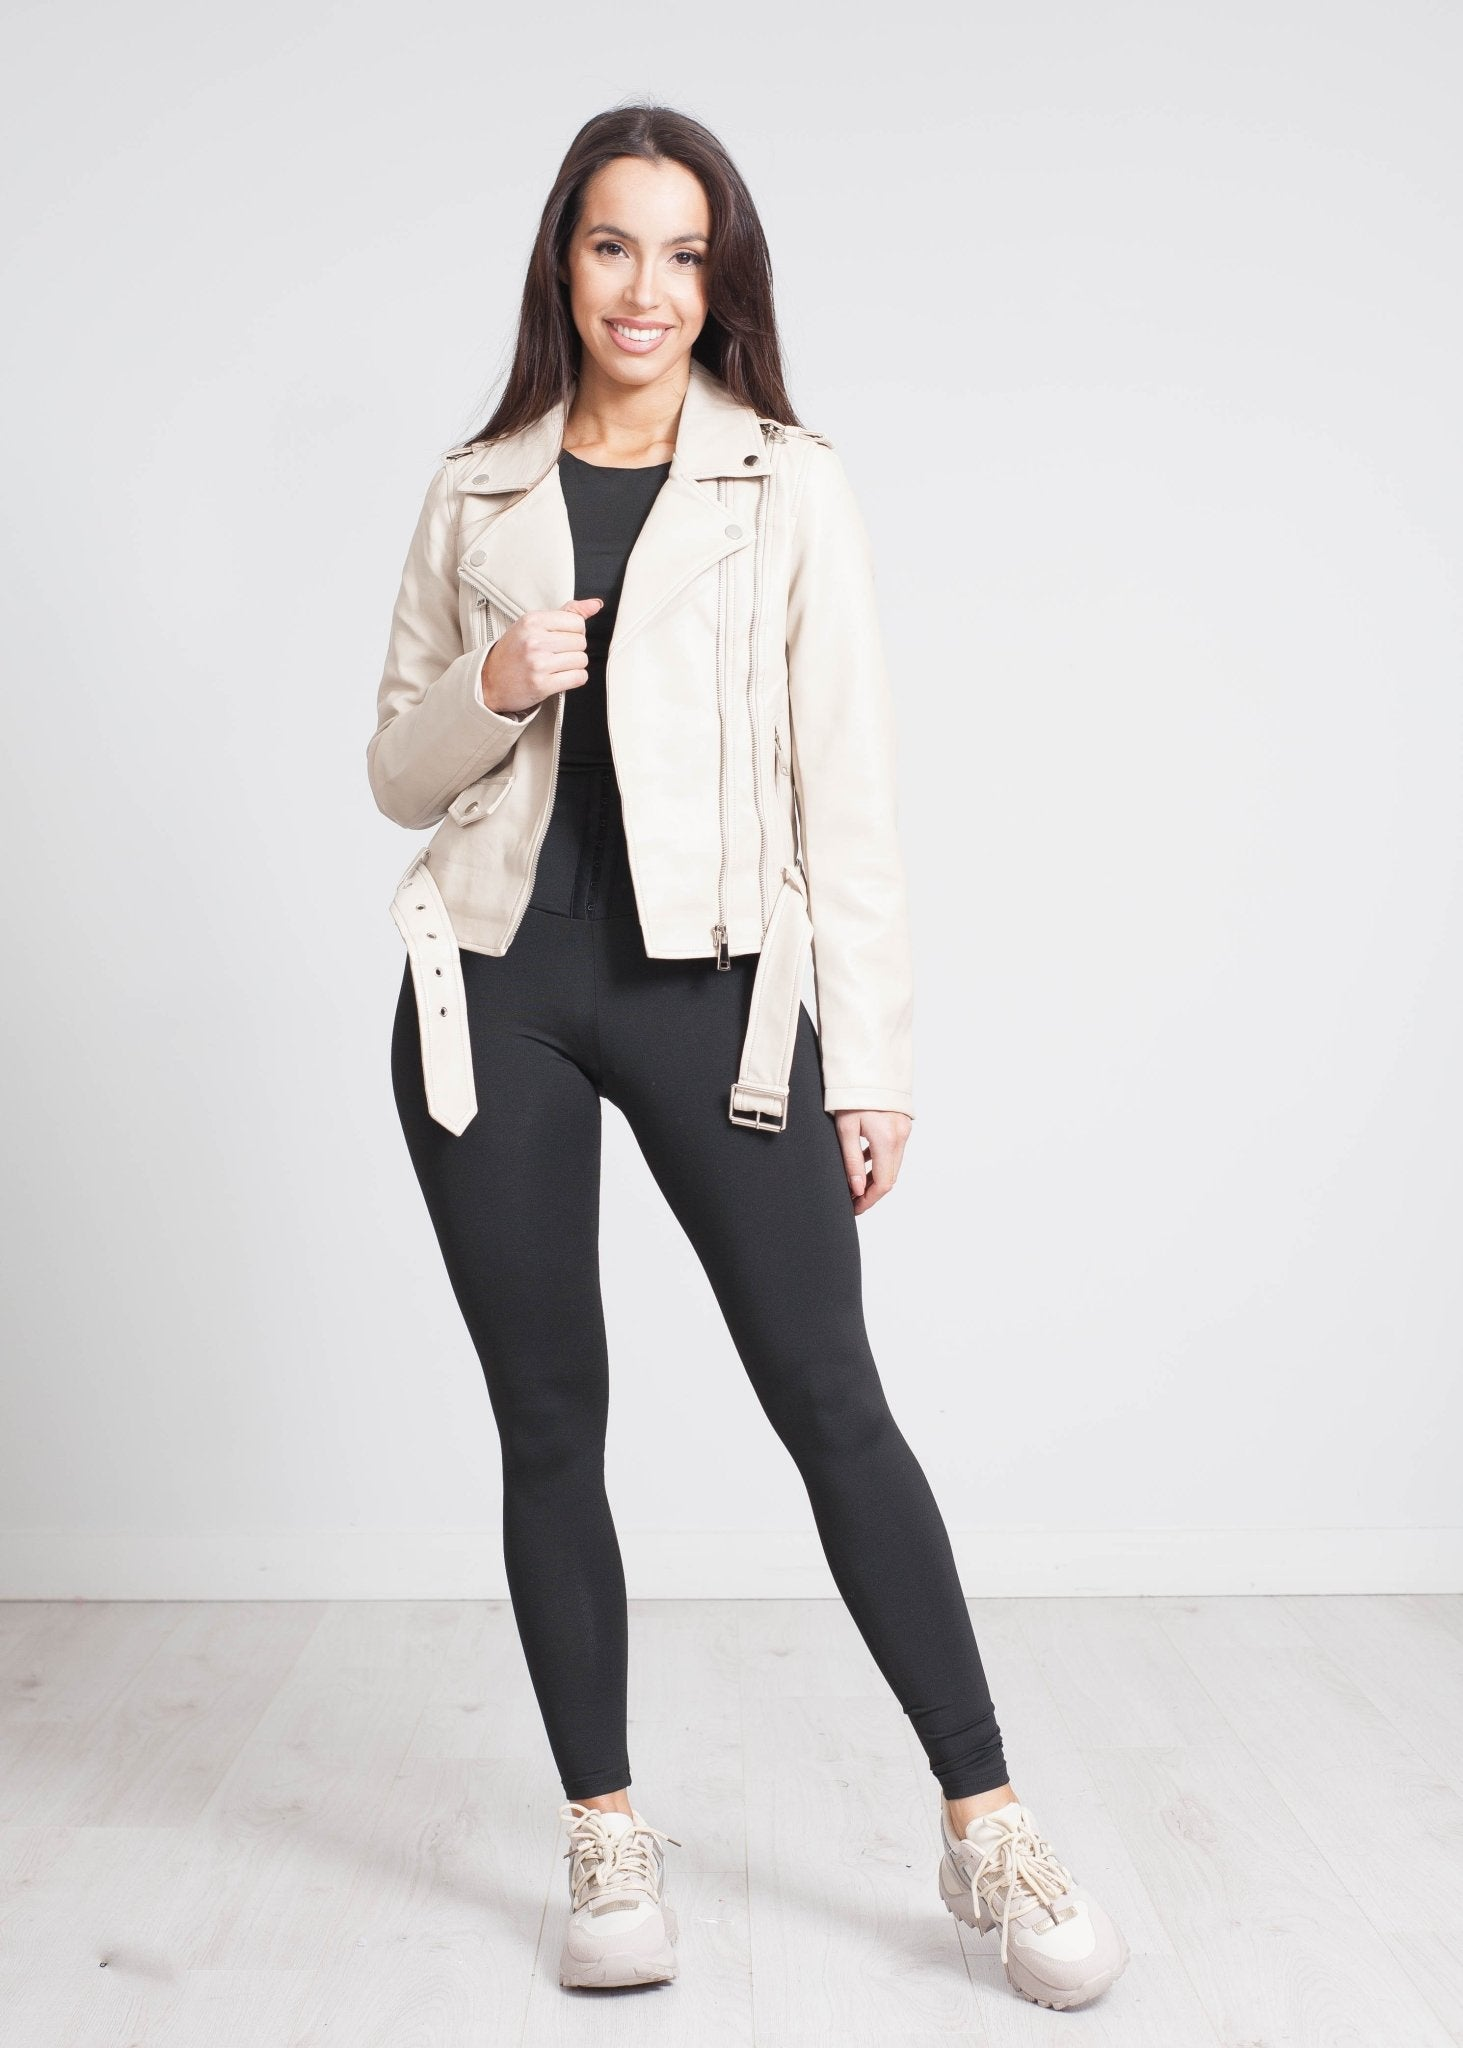 Caitlyn Belted Leather Jacket In Stone - The Walk in Wardrobe